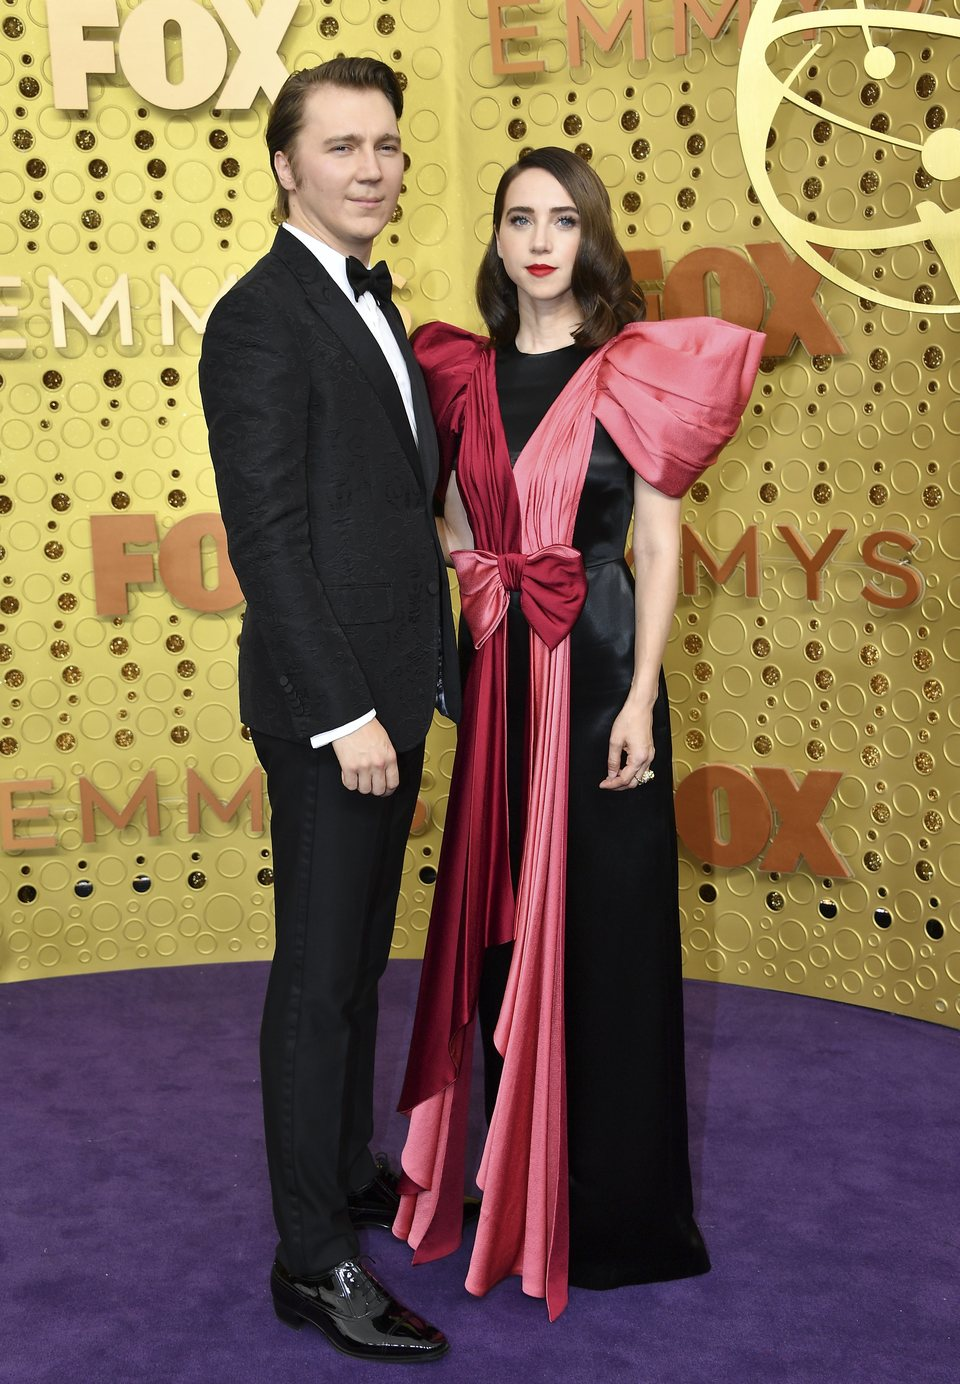 Paul Dano y Zoe Kazan at the Emmy 2019 red carpet